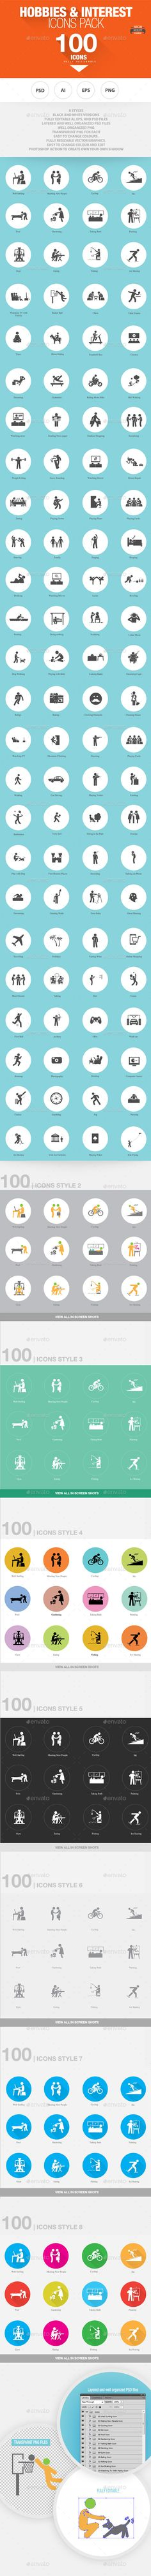 100  Hobbies and Interests Icons — Photoshop PSD #flat icons #app • Available here → https://graphicriver.net/item/100-hobbies-and-interests-icons-/6913540?ref=pxcr